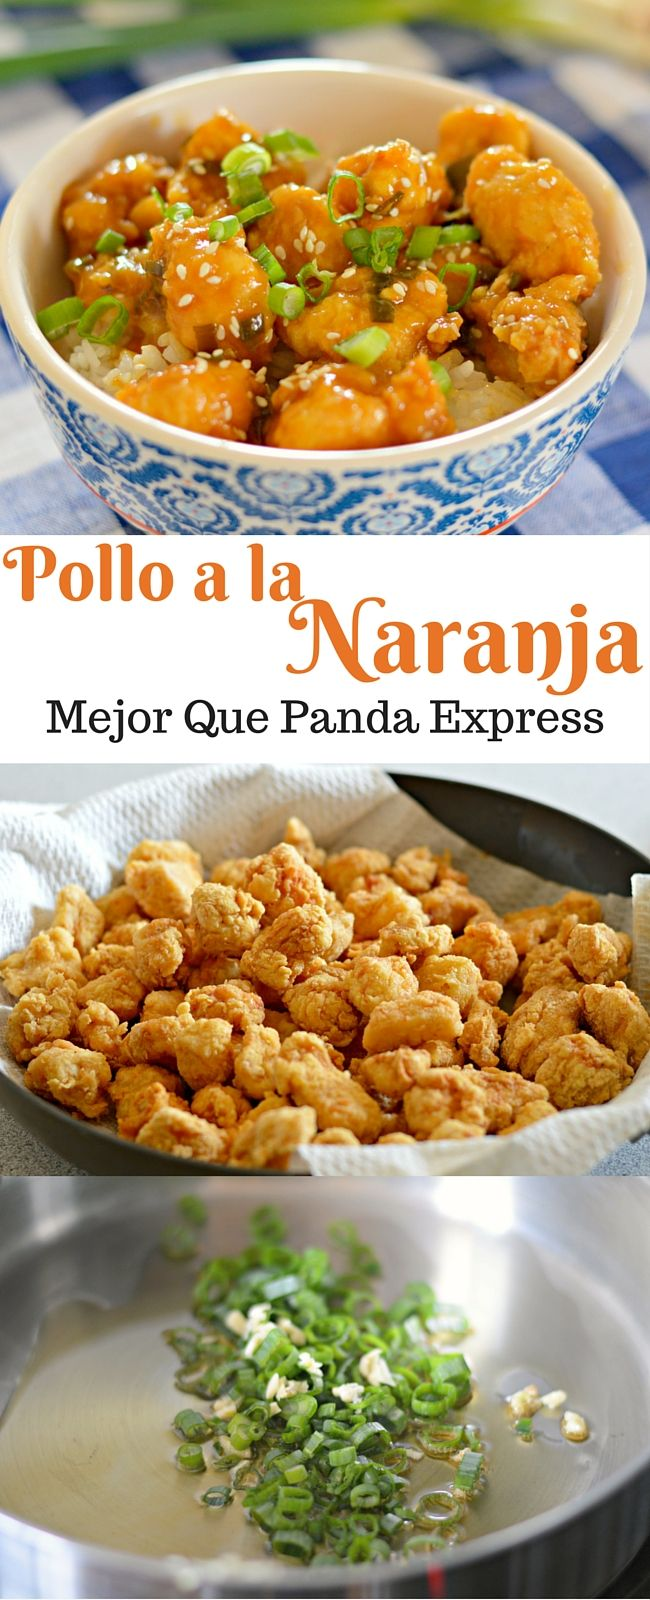 241 best espaol images on pinterest cleaning hacks home hacks pollo a la naranja mejor sabor que el de panda express chicken diet recipechinese food forumfinder Gallery